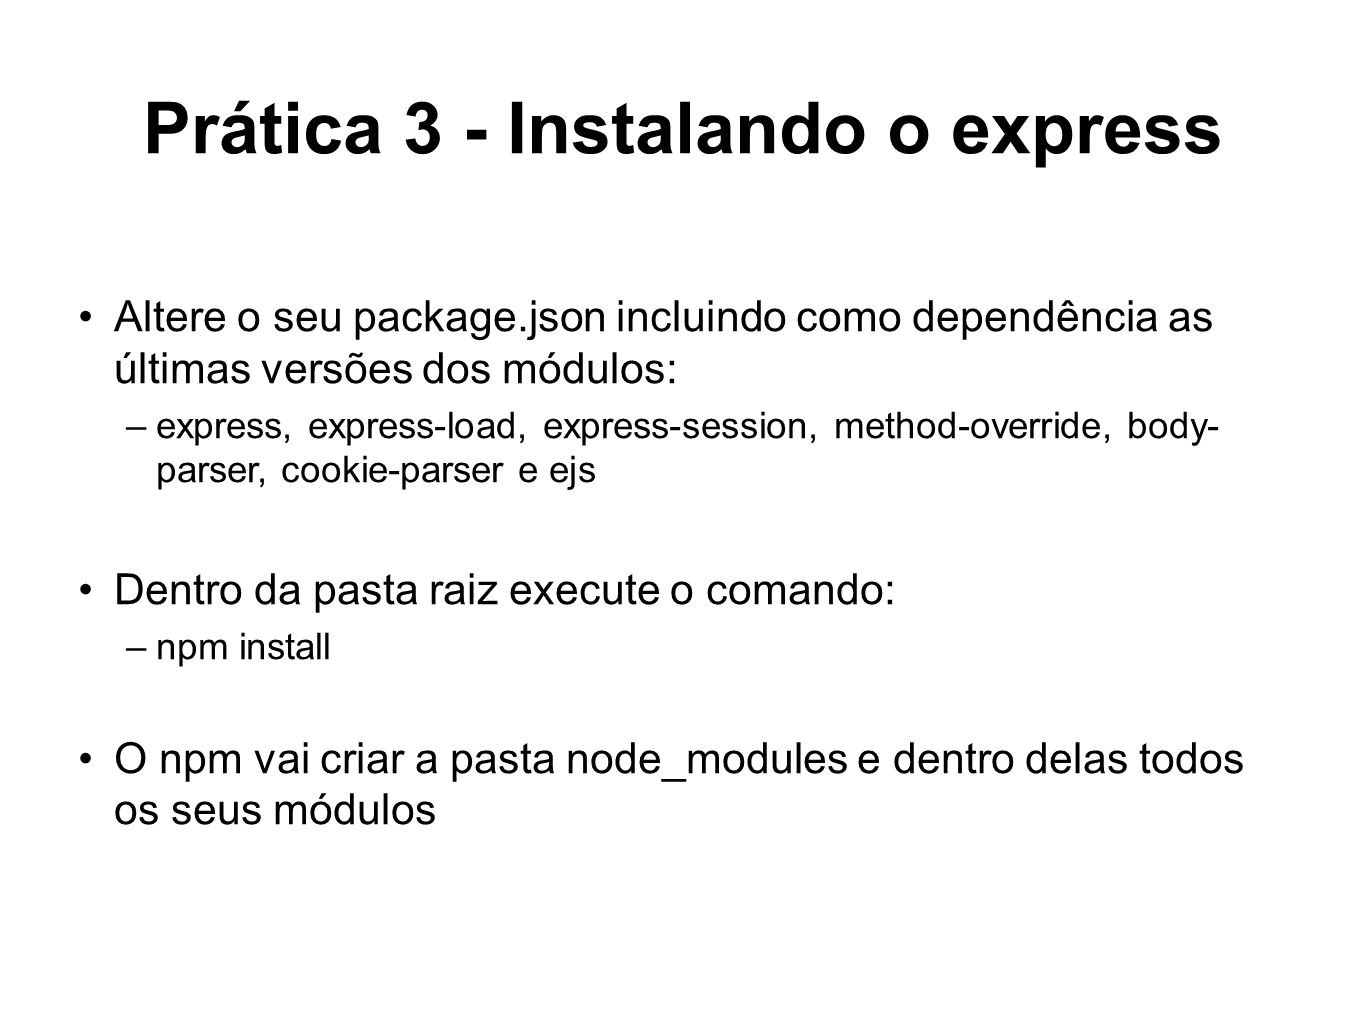 Prática 3 - Instalando o express Altere o seu package.json incluindo como dependência as últimas versões dos módulos: –express, express-load, express-session, method-override, body- parser, cookie-parser e ejs Dentro da pasta raiz execute o comando: –npm install O npm vai criar a pasta node_modules e dentro delas todos os seus módulos